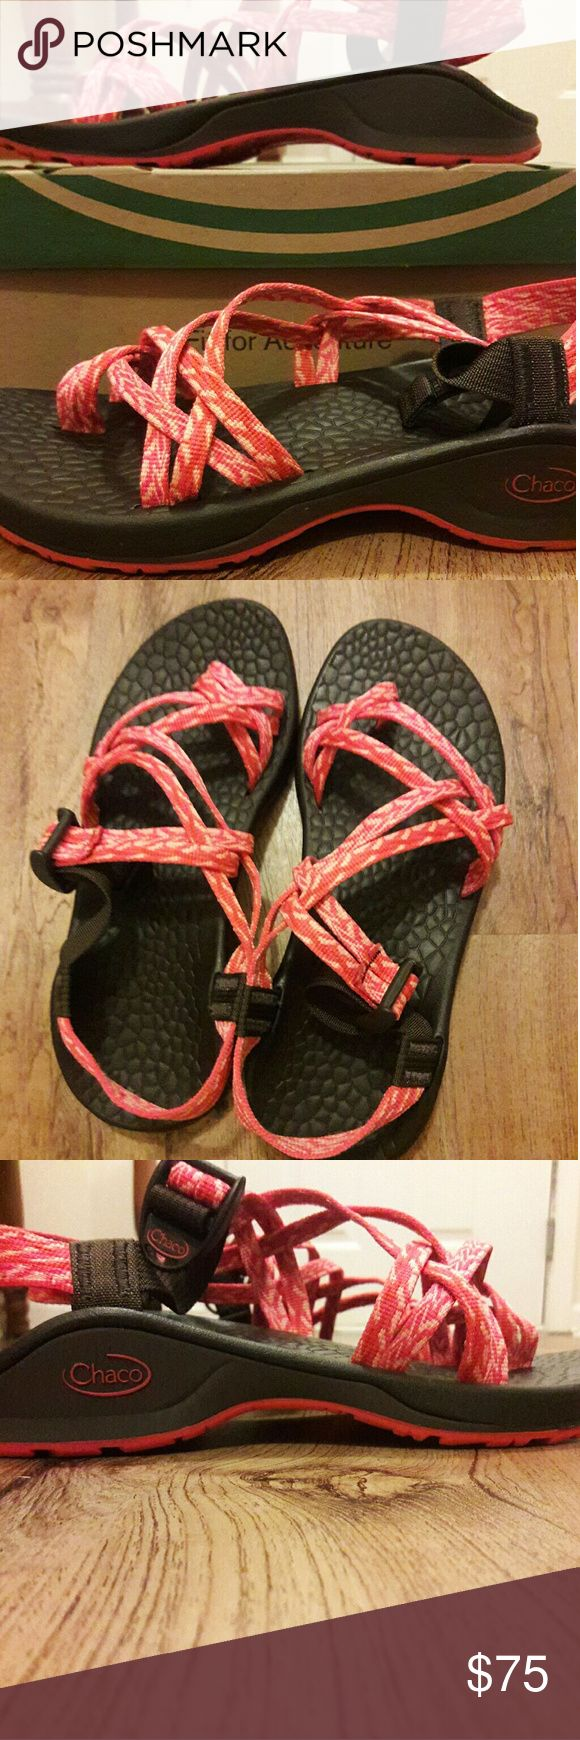 SALE!! Chacos Size 8 👣 Super cute Chacos size 8 regular width. Worn once for about an hour! Still in New condition as can see from bottoms. Just not my size as i had hoped! Excellent condition. The bottoms are brown and the straps are orange. A must have for summer 🌞 Chacos Shoes Sandals